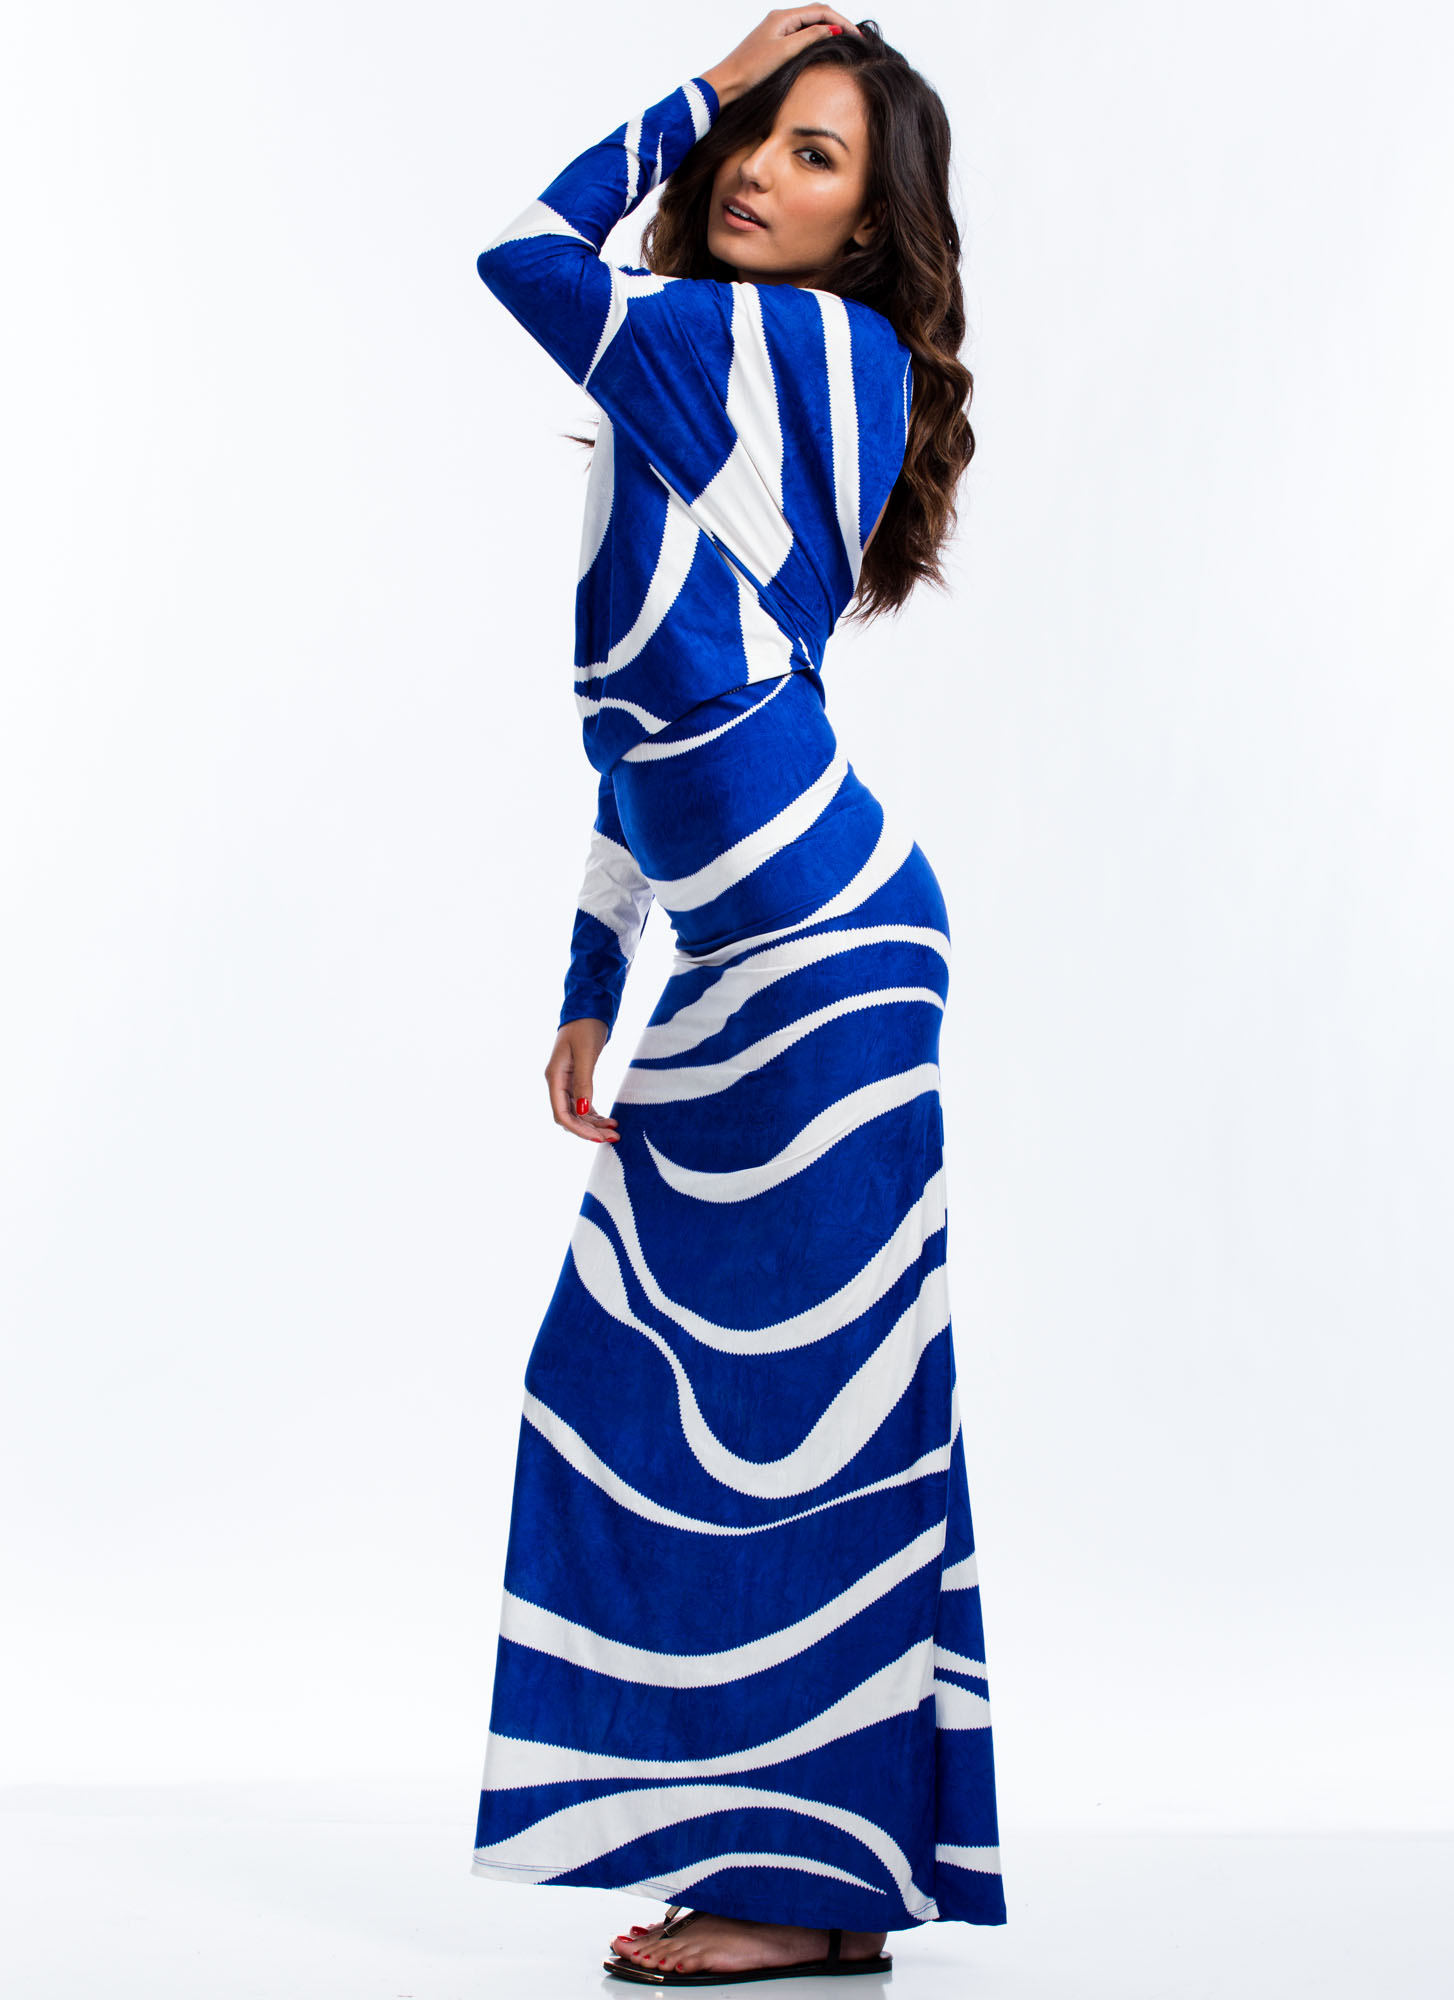 Draped Crusader Swirled Maxi Dress WHITEBLUE